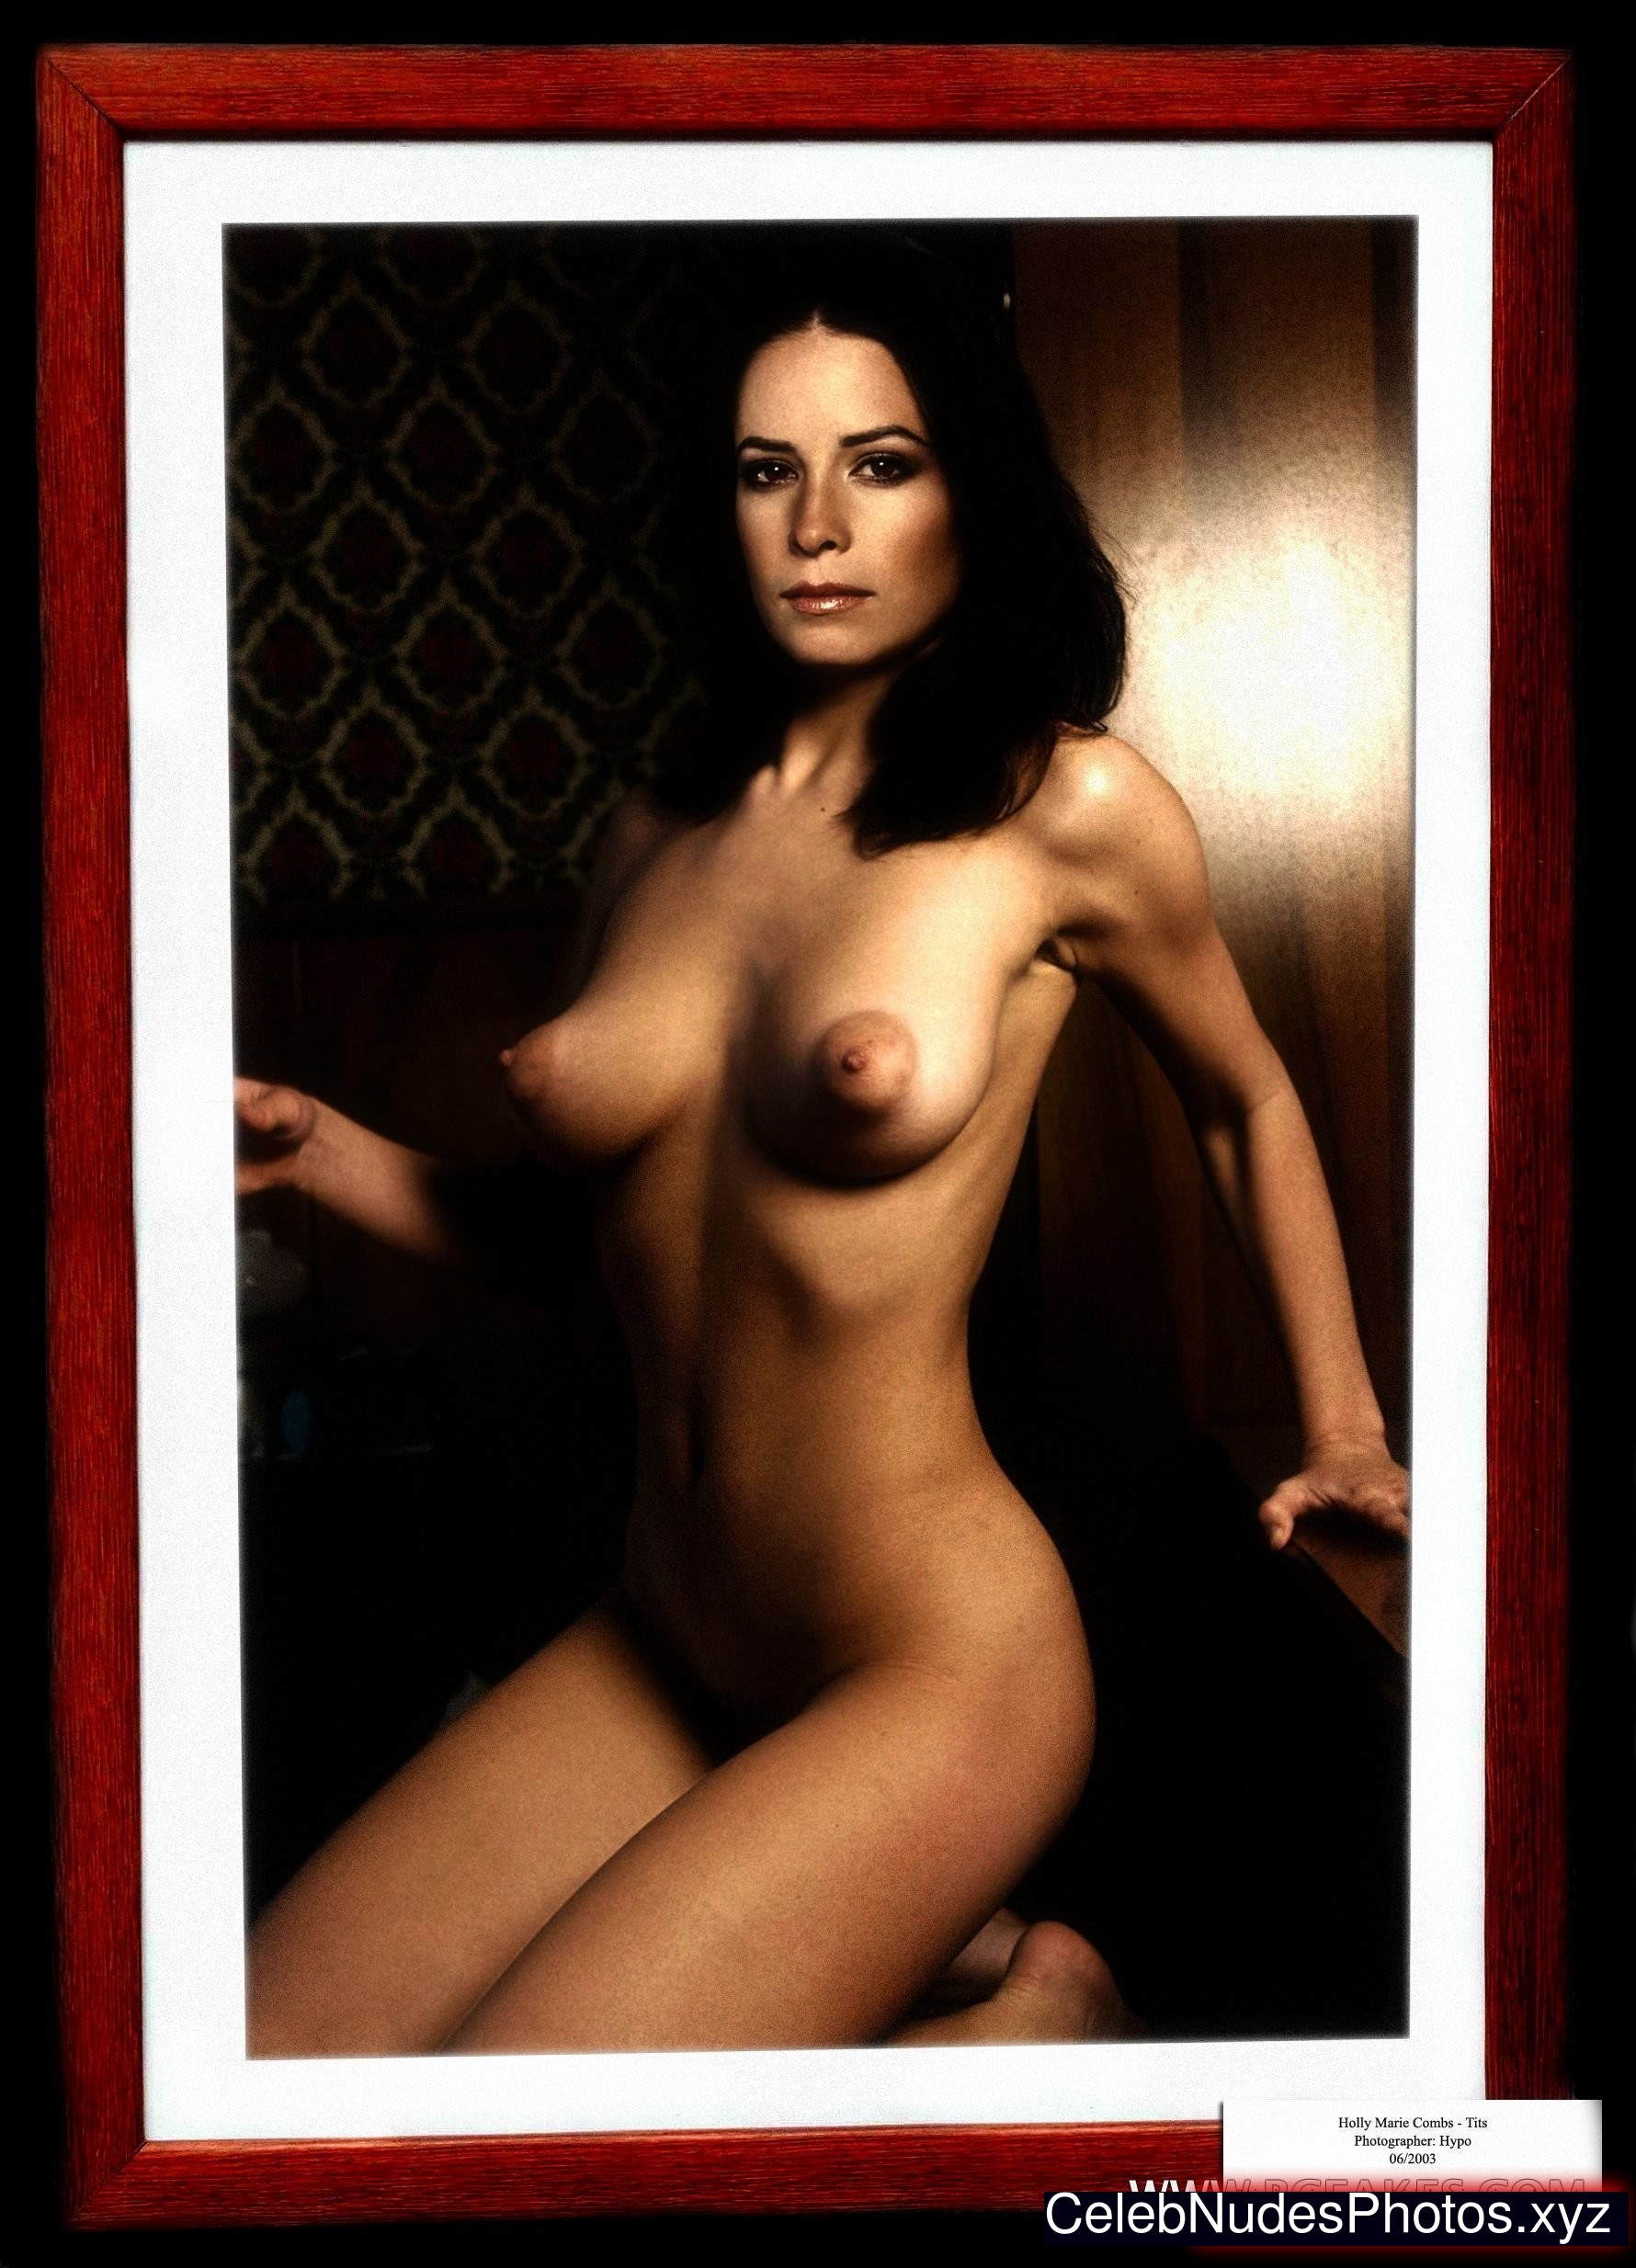 has holly marie combs ever appeared nude